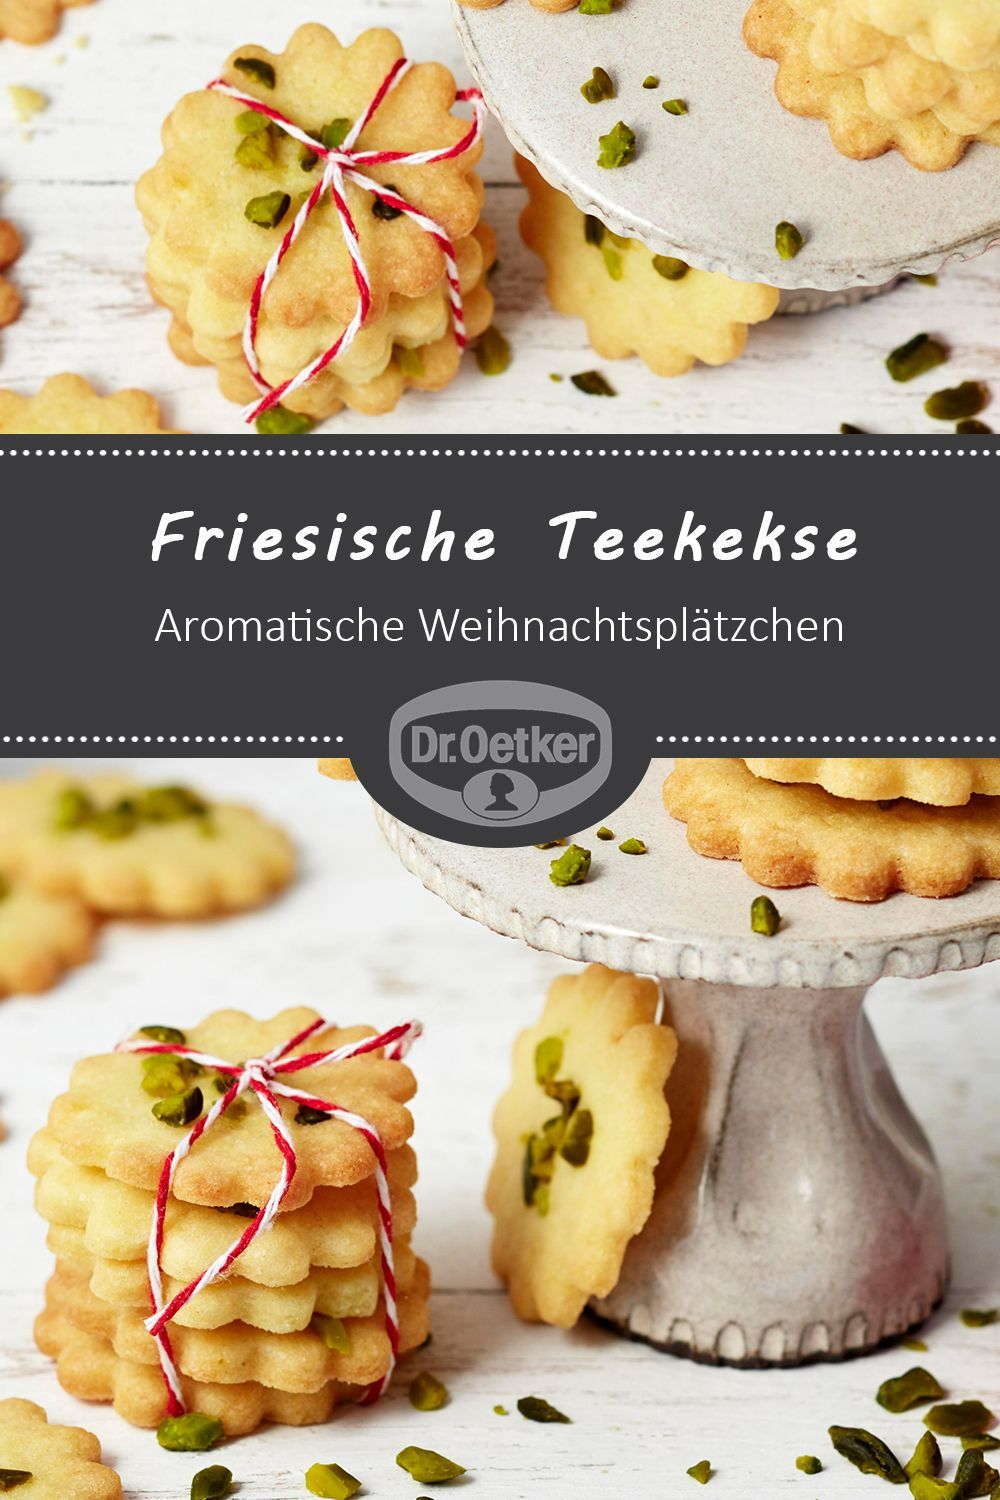 Friesische Teekekse Menus With Images Food Sweet Cookies Food And Drink